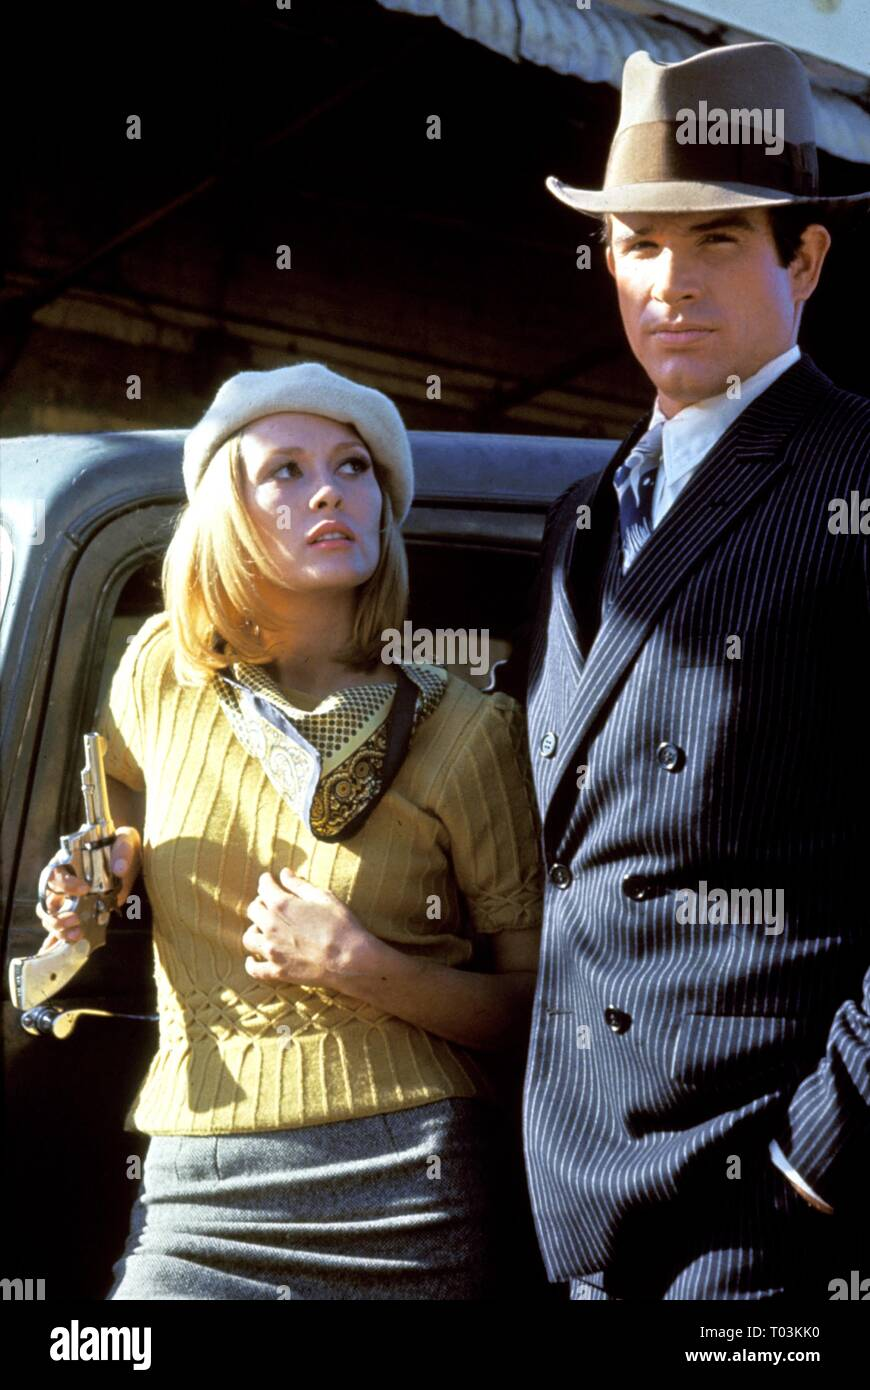 FAYE DUNAWAY, WARREN BEATTY, BONNIE AND CLYDE, 1967 - Stock Image